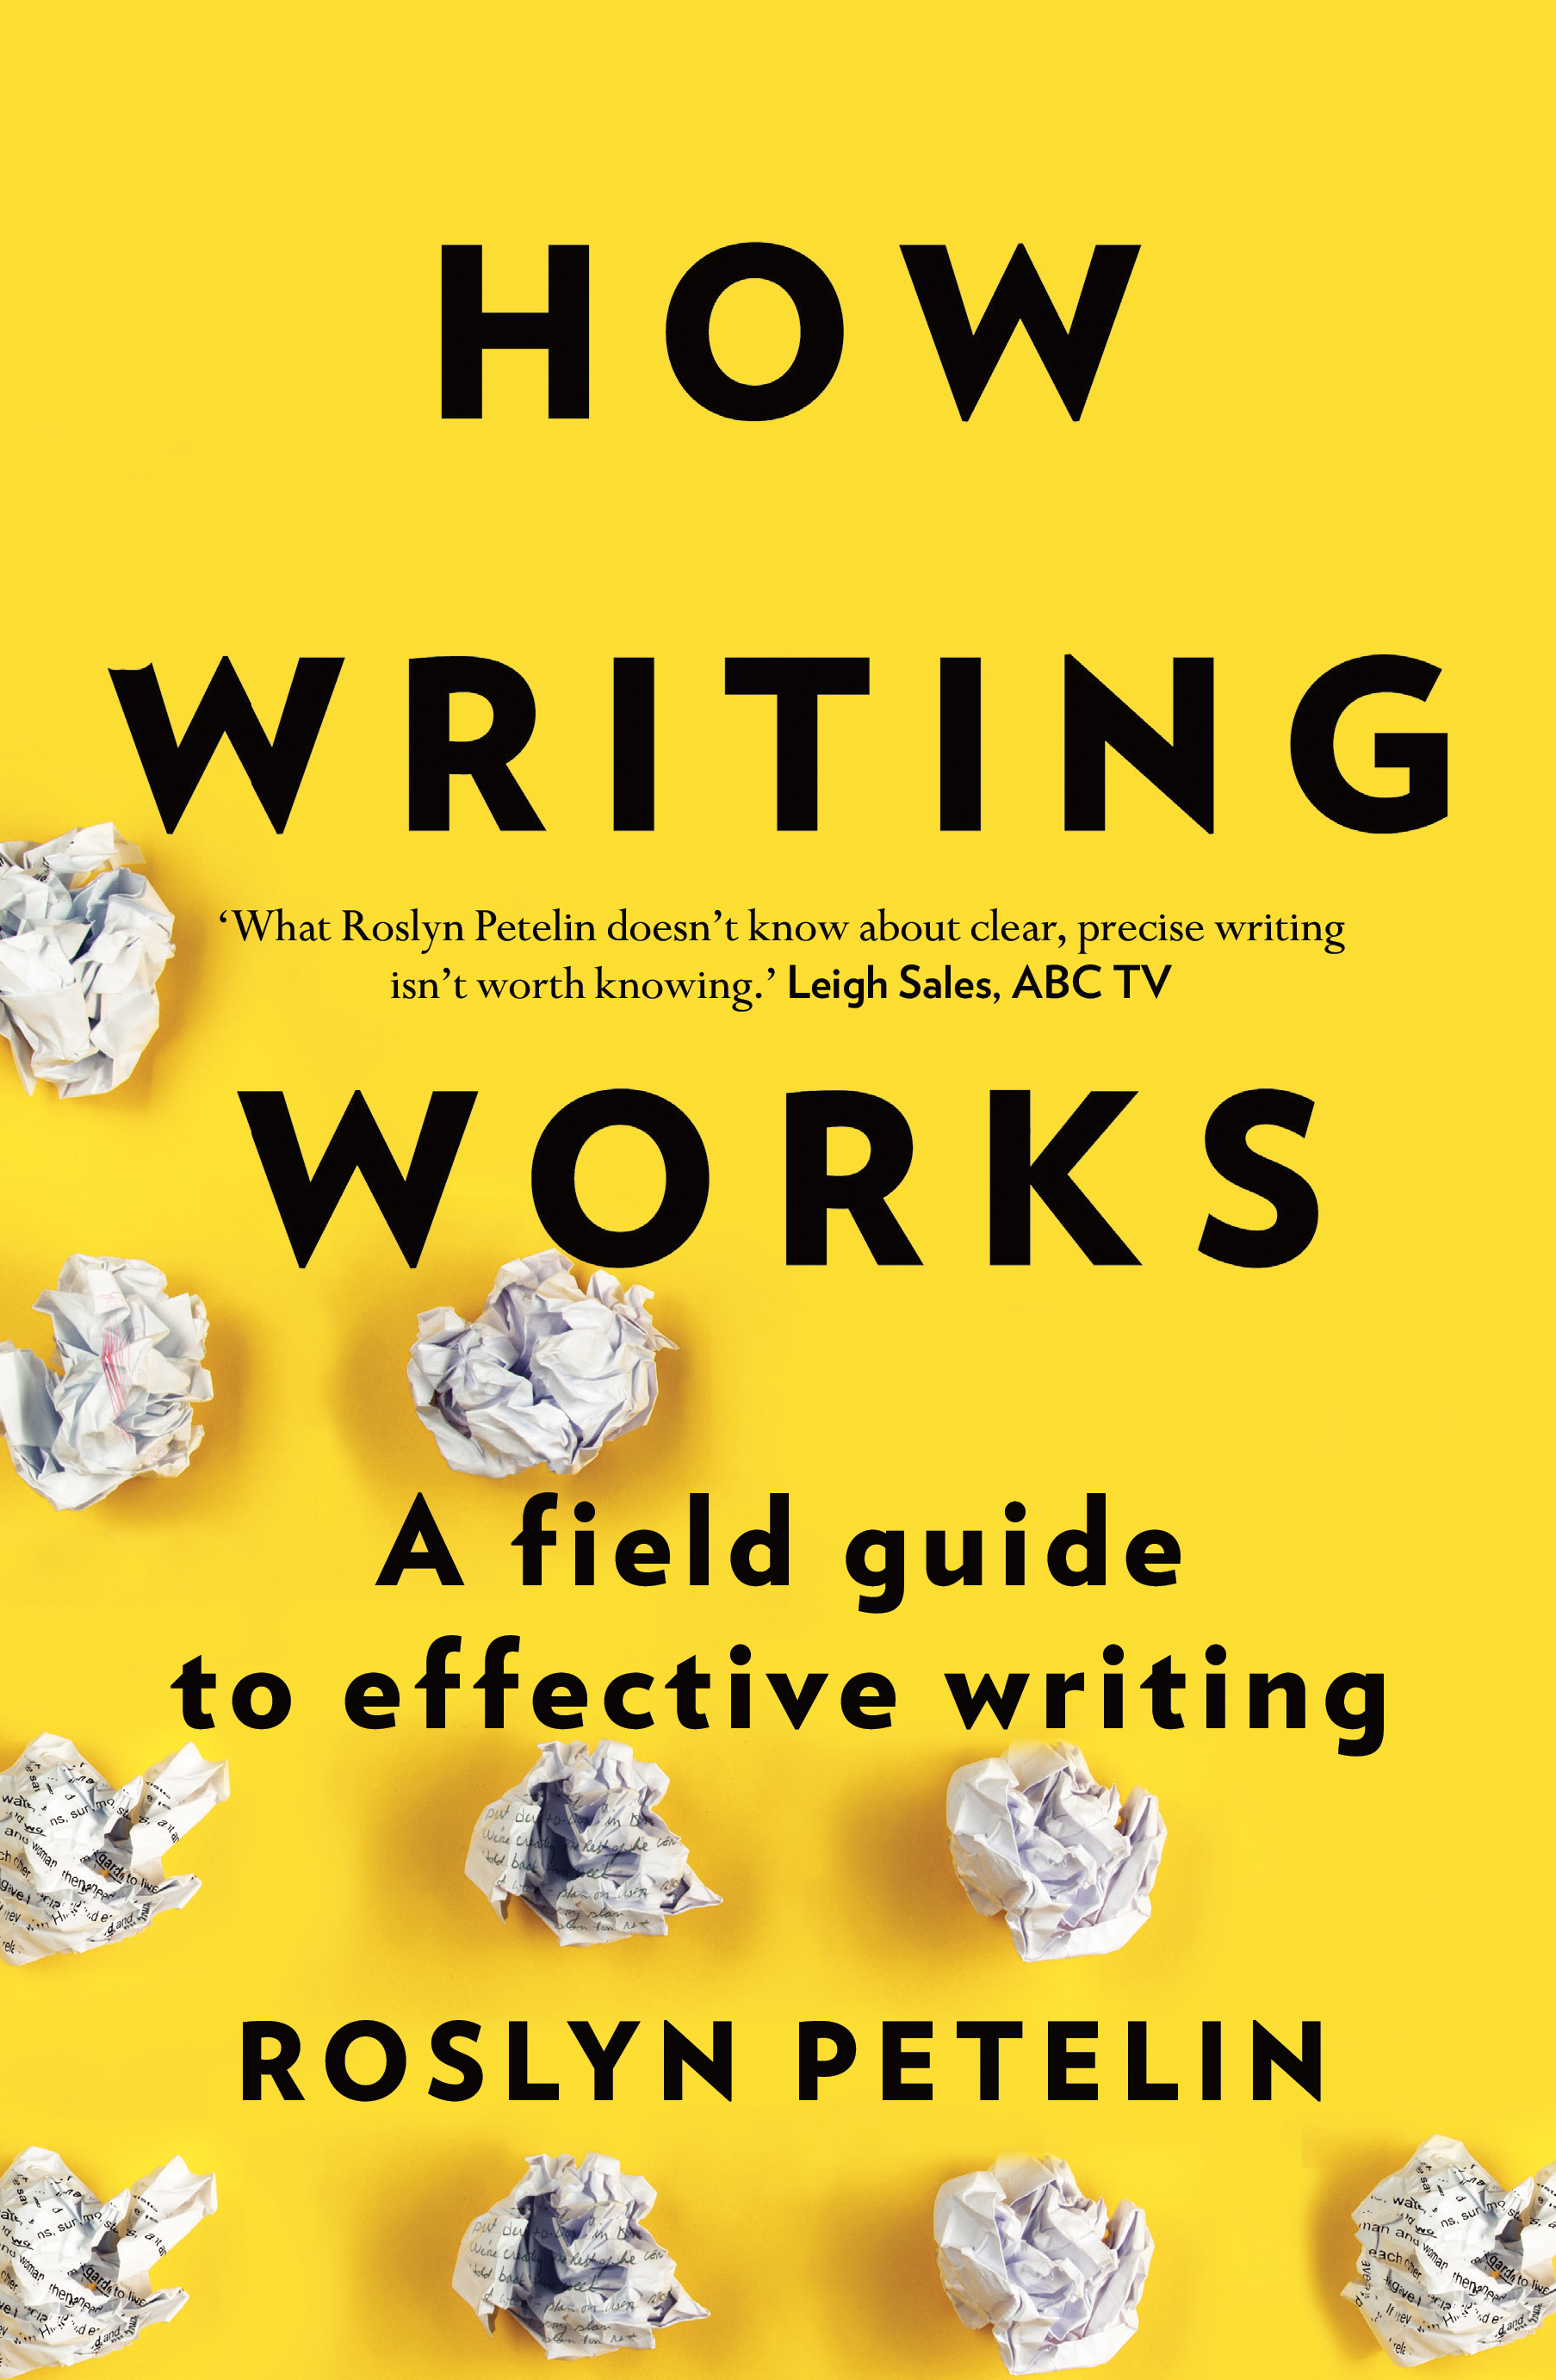 Book review: How Writing Works